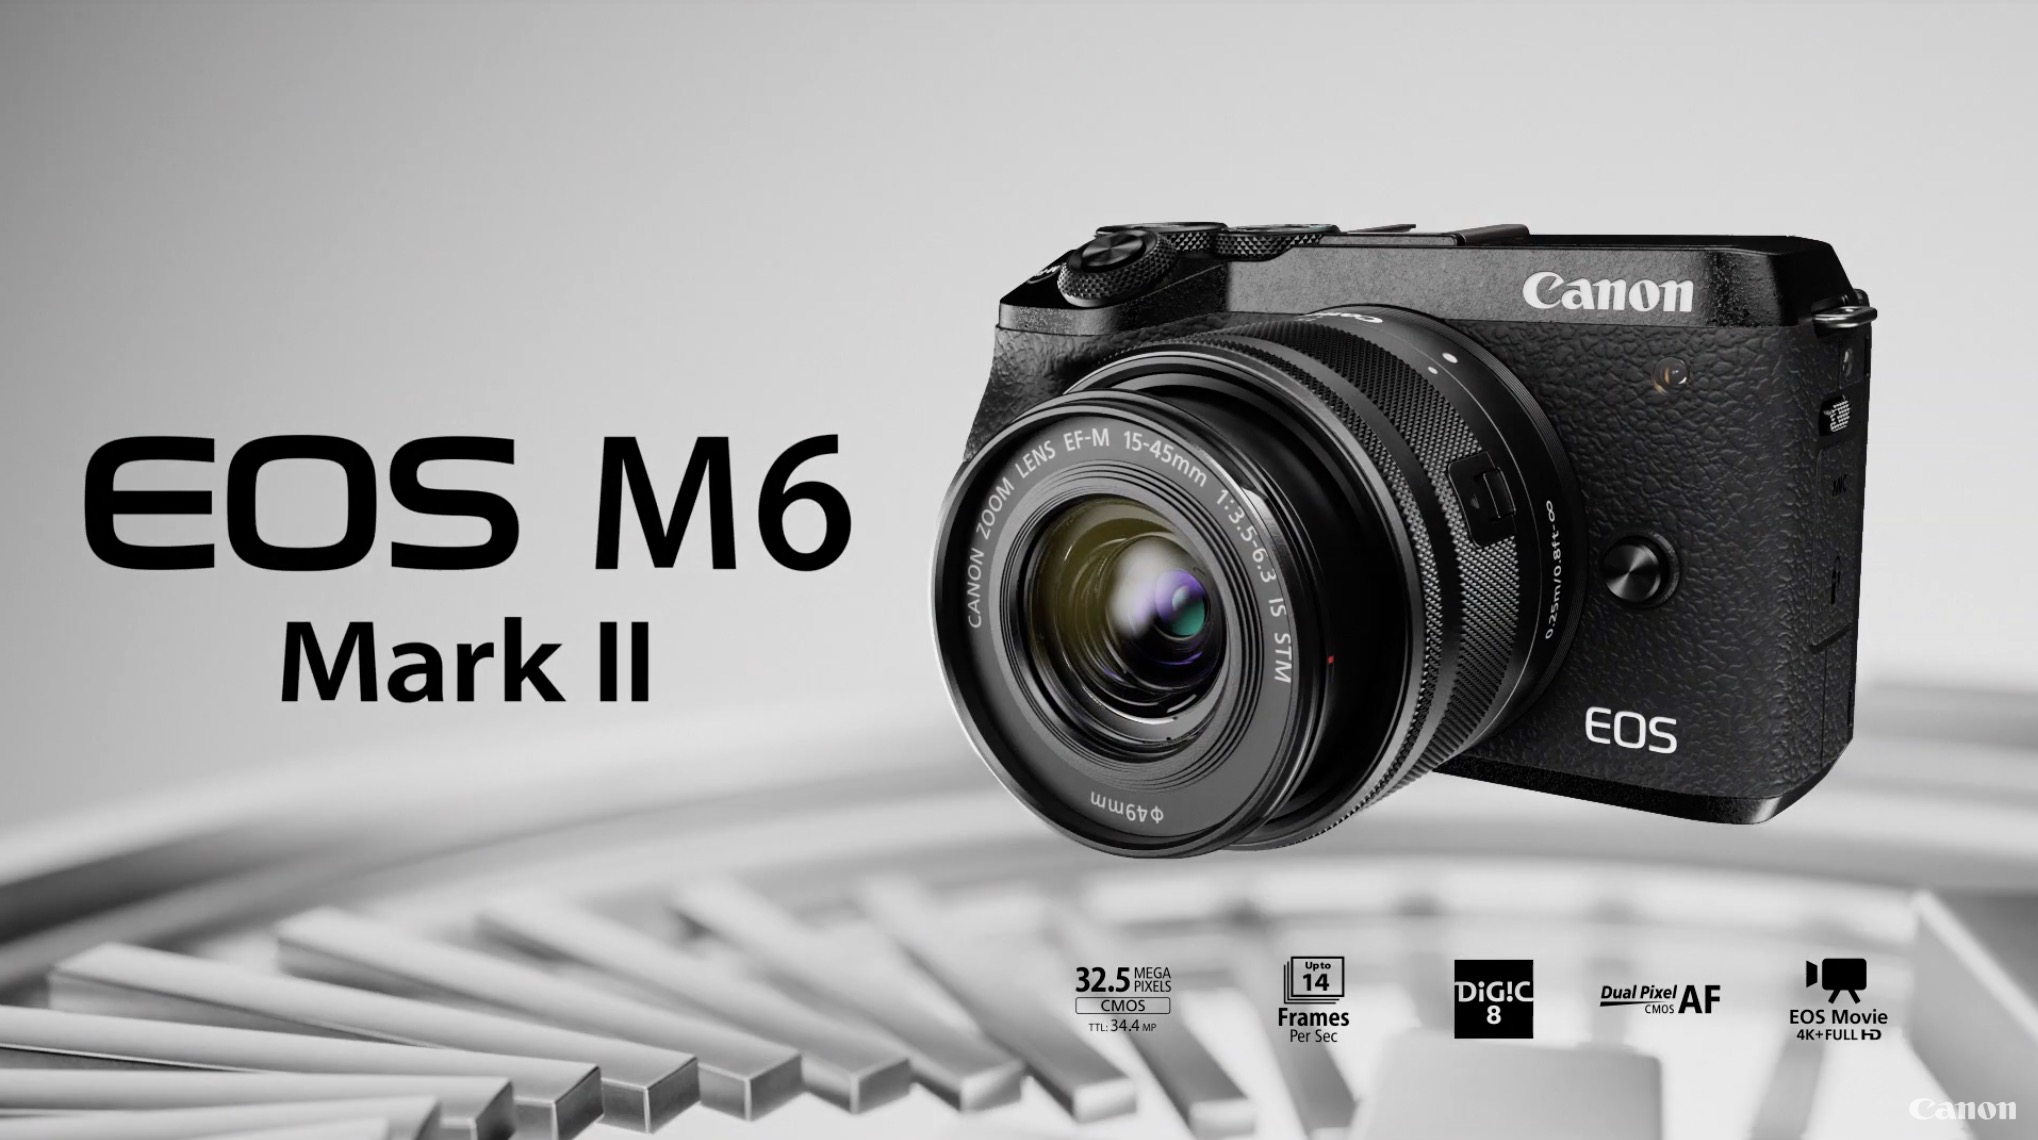 Canon Australia shares accidental 'first look' at EOS M6 Mark II, EOS 90D cameras: Digital Photography Review